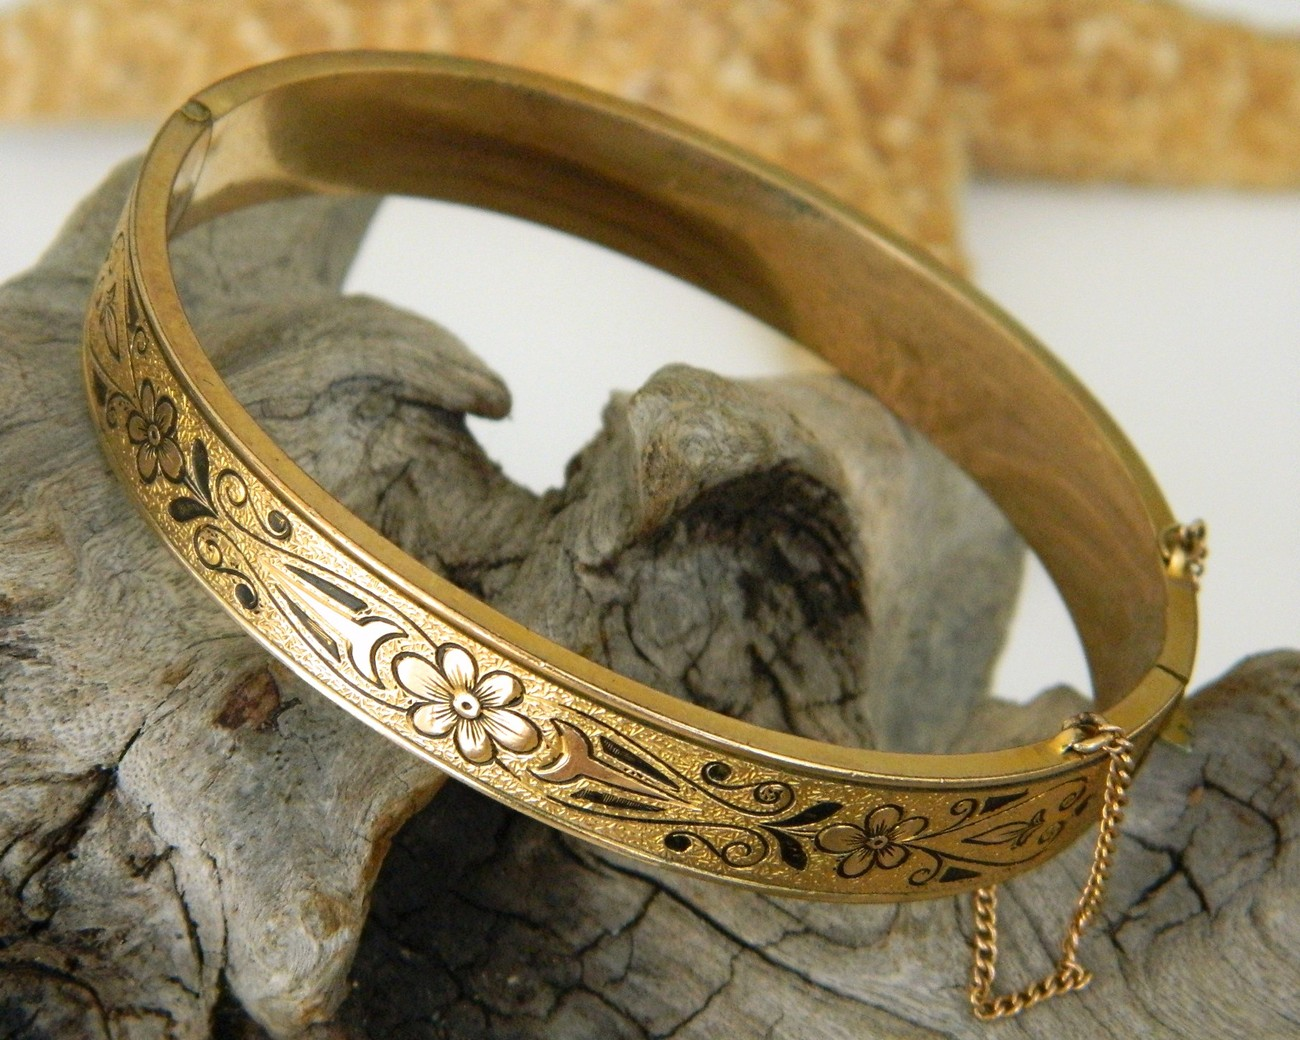 10k_gold_filled_hinged_bracelet_bangle_vintage